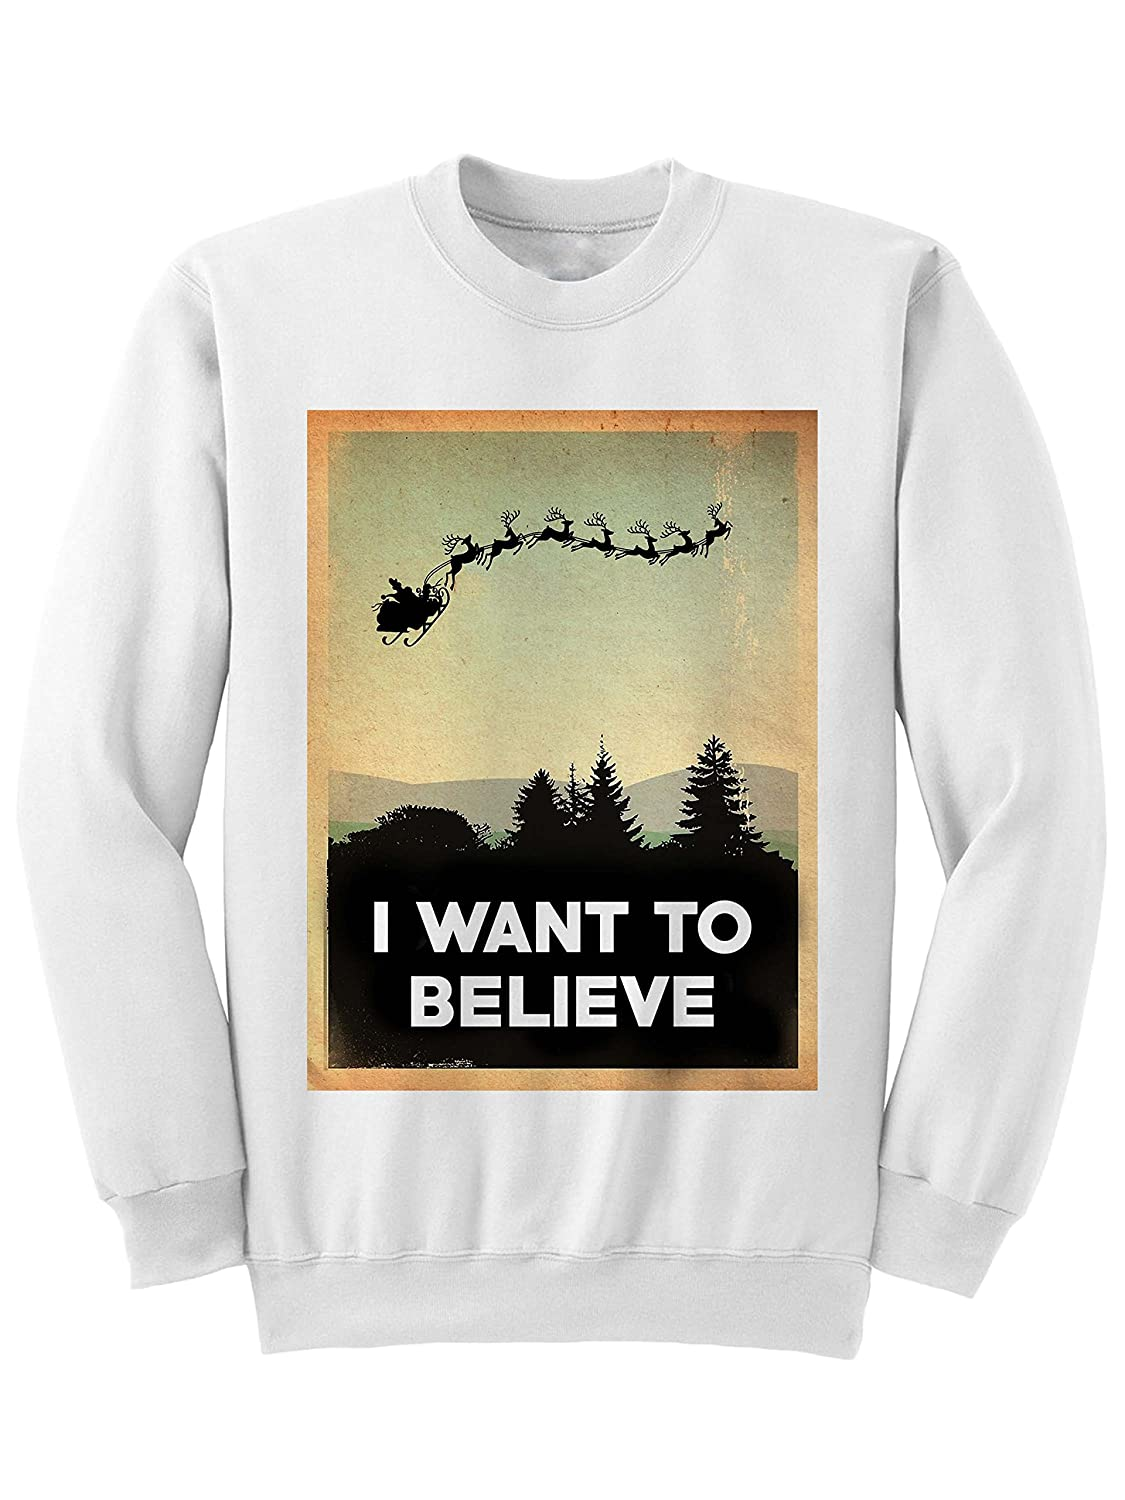 Celebrity Cotton Want To Believe Christmas Sweater Ugly Sweaters Funny Gifts